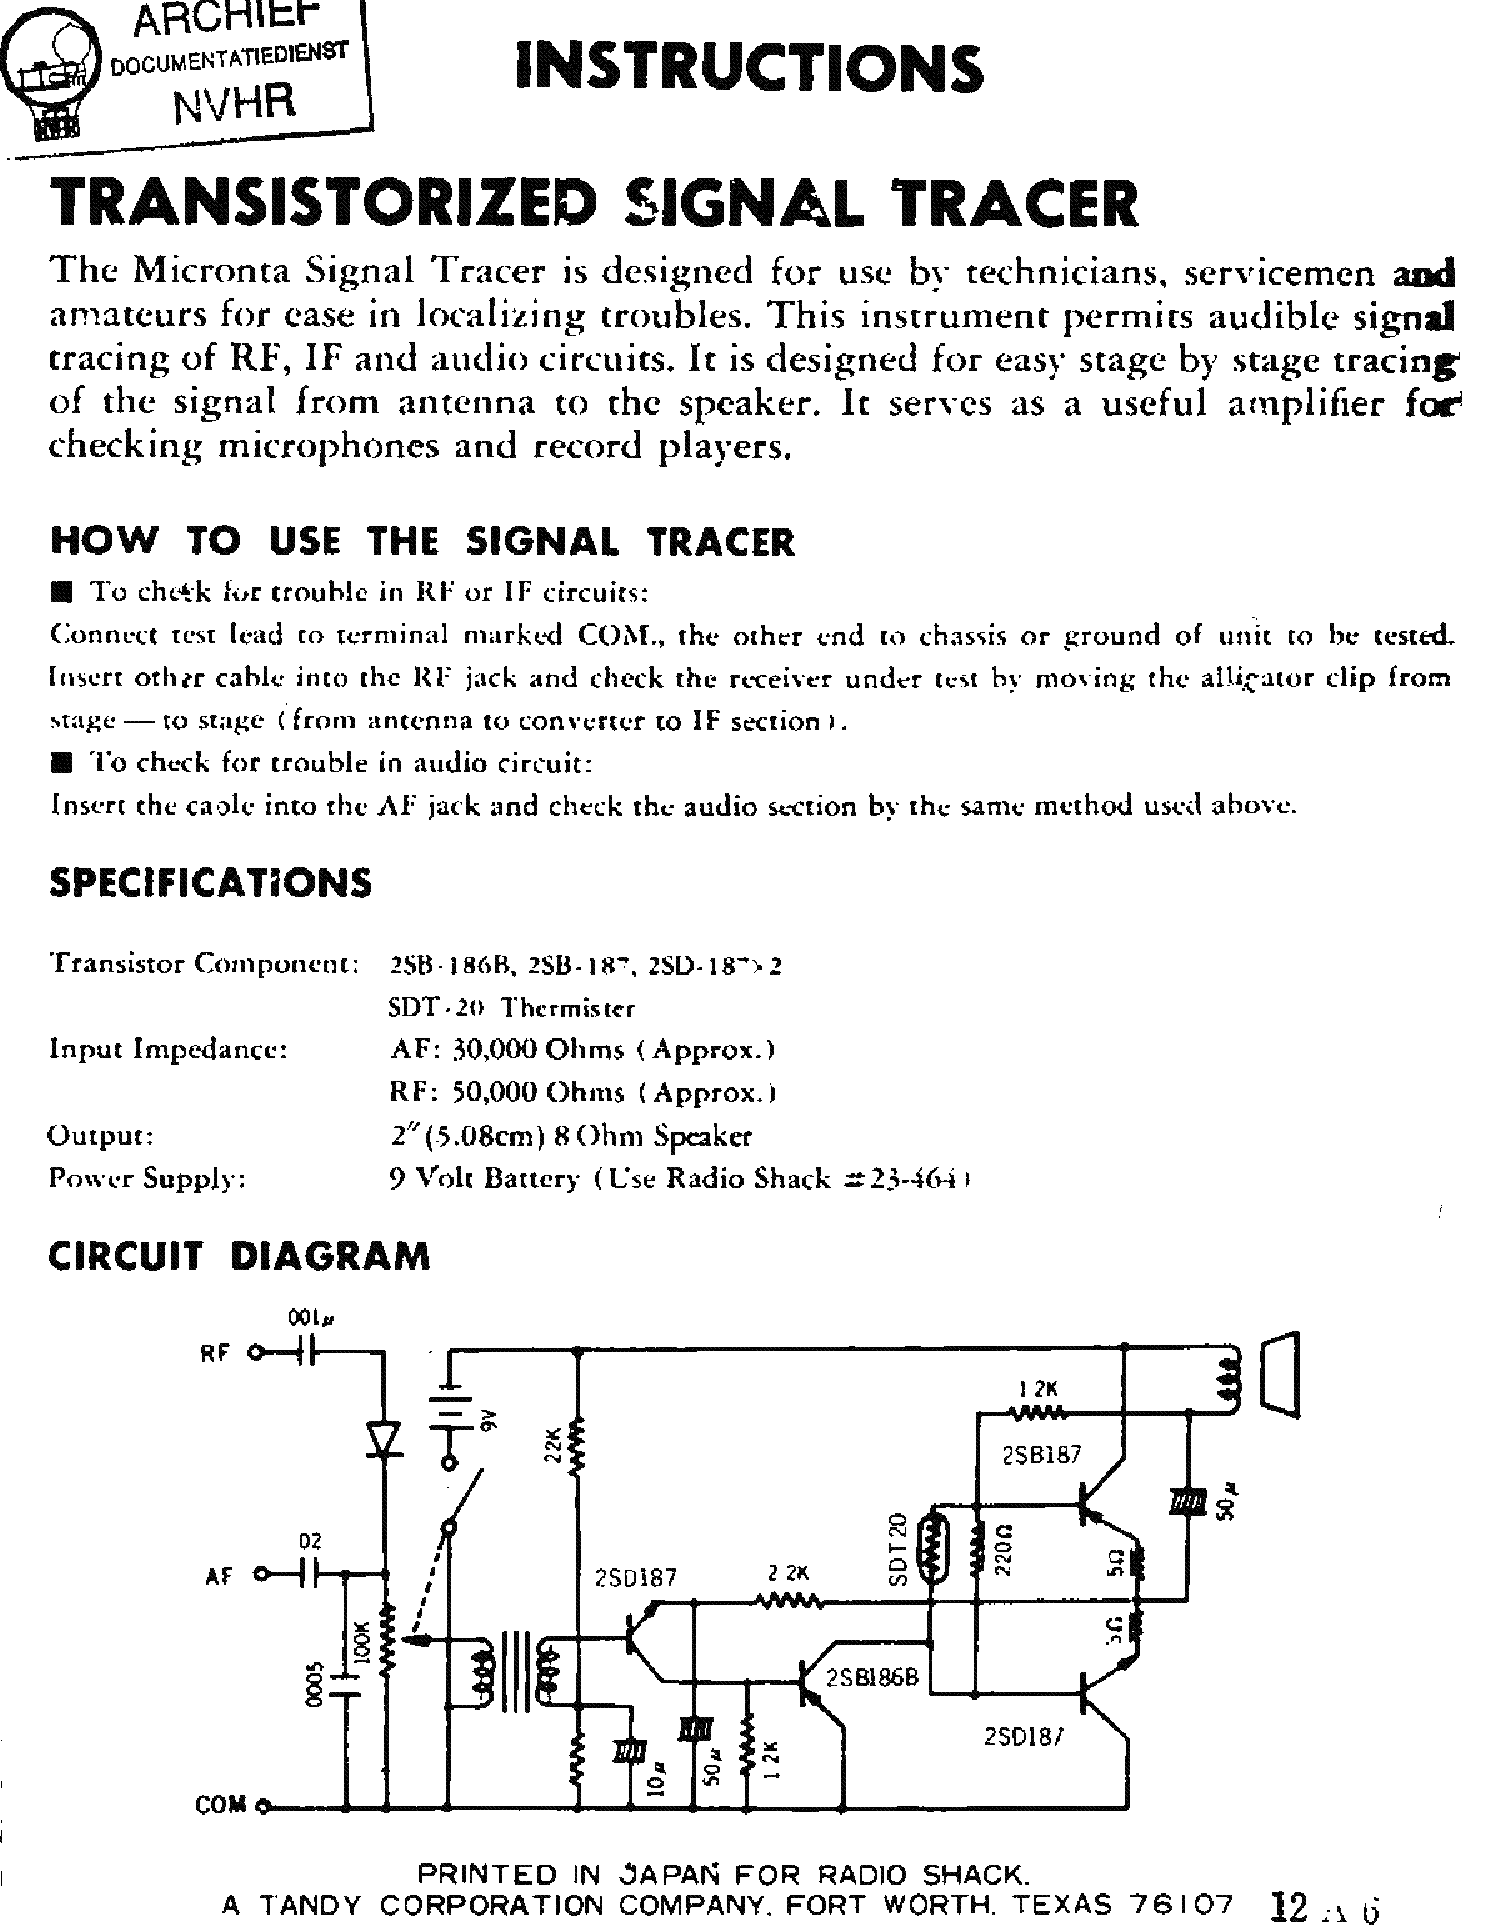 micronta_signaltracer_transistorized_rf if af_signal_tracer_sch.pdf_1 micronta 22 204 analog mm sch service manual download, schematics  at gsmx.co